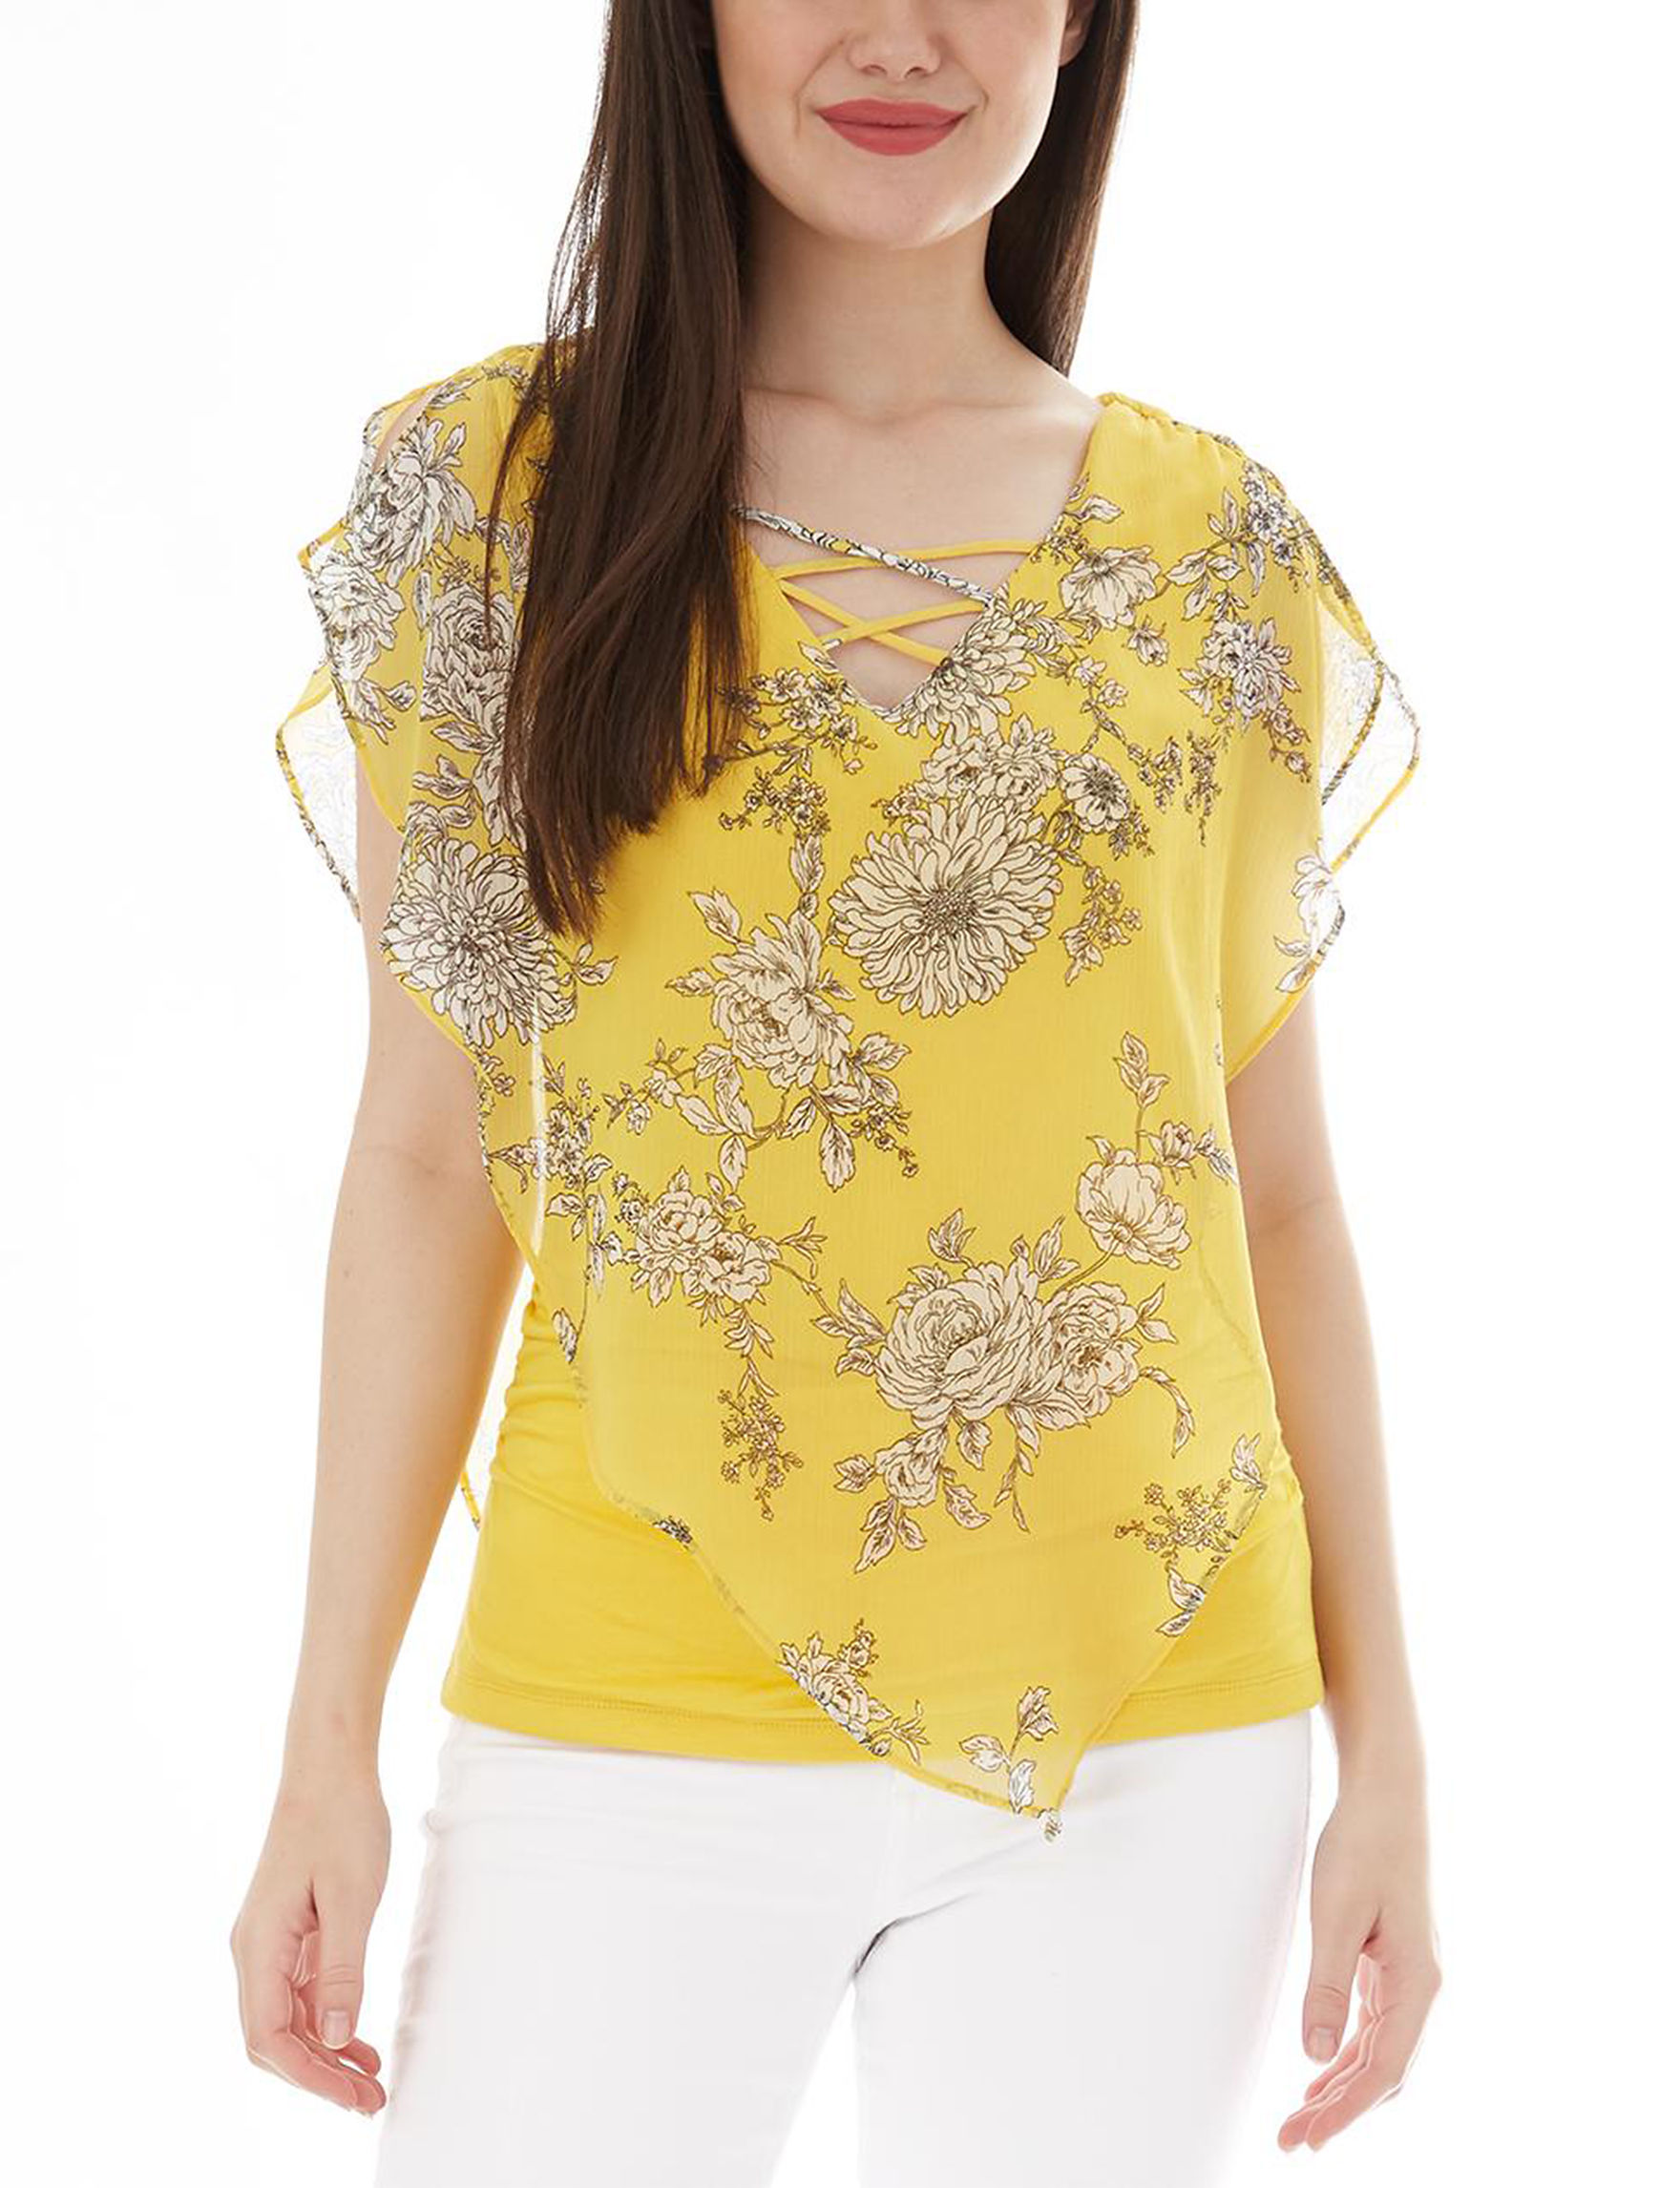 A. Byer Yellow Floral Shirts & Blouses